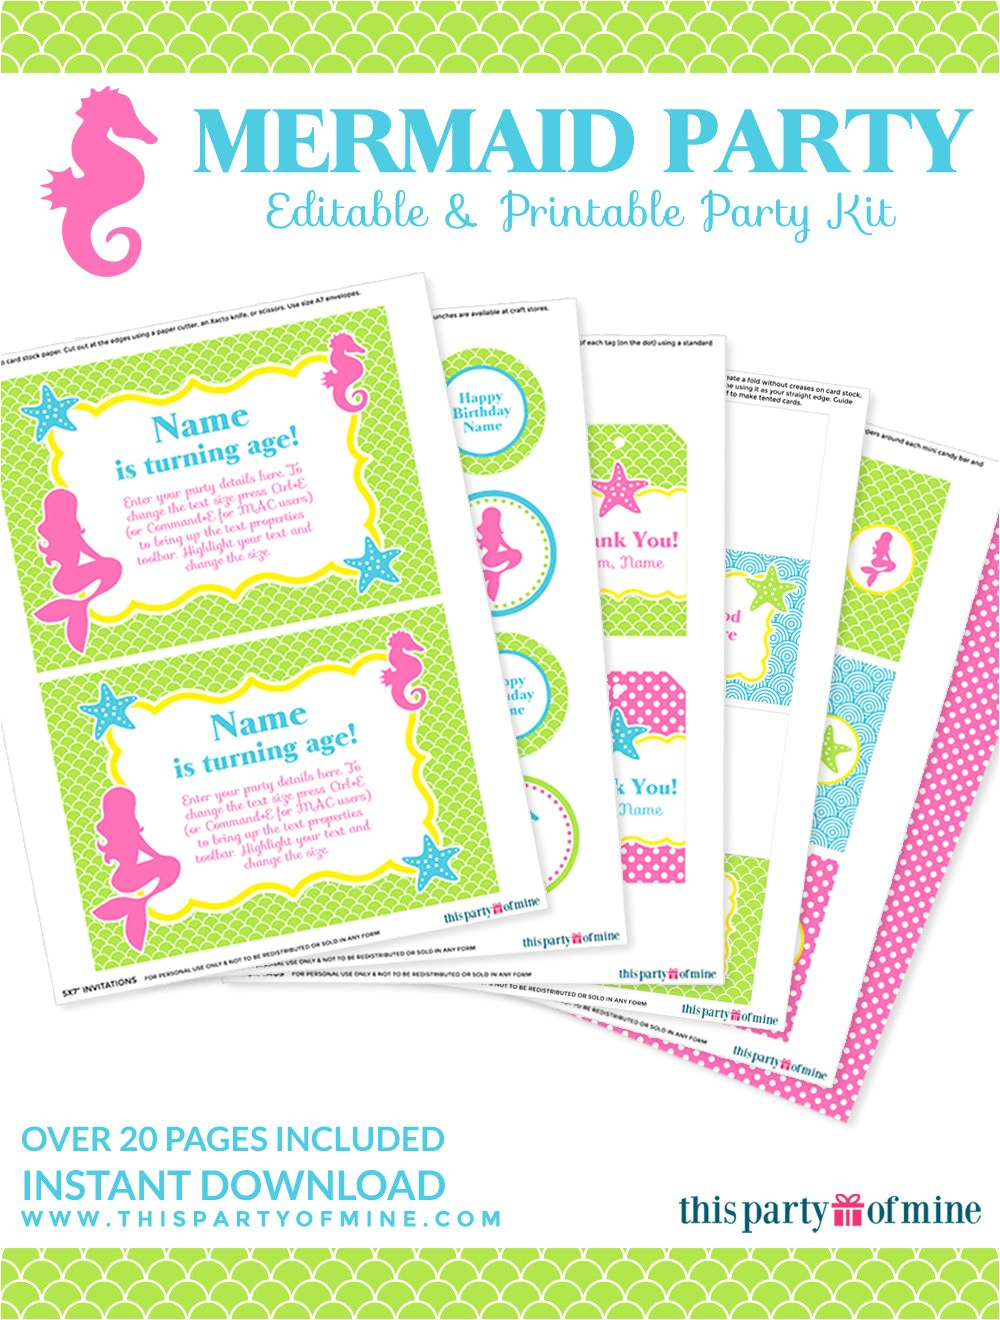 mermaid party invitation decorations kit